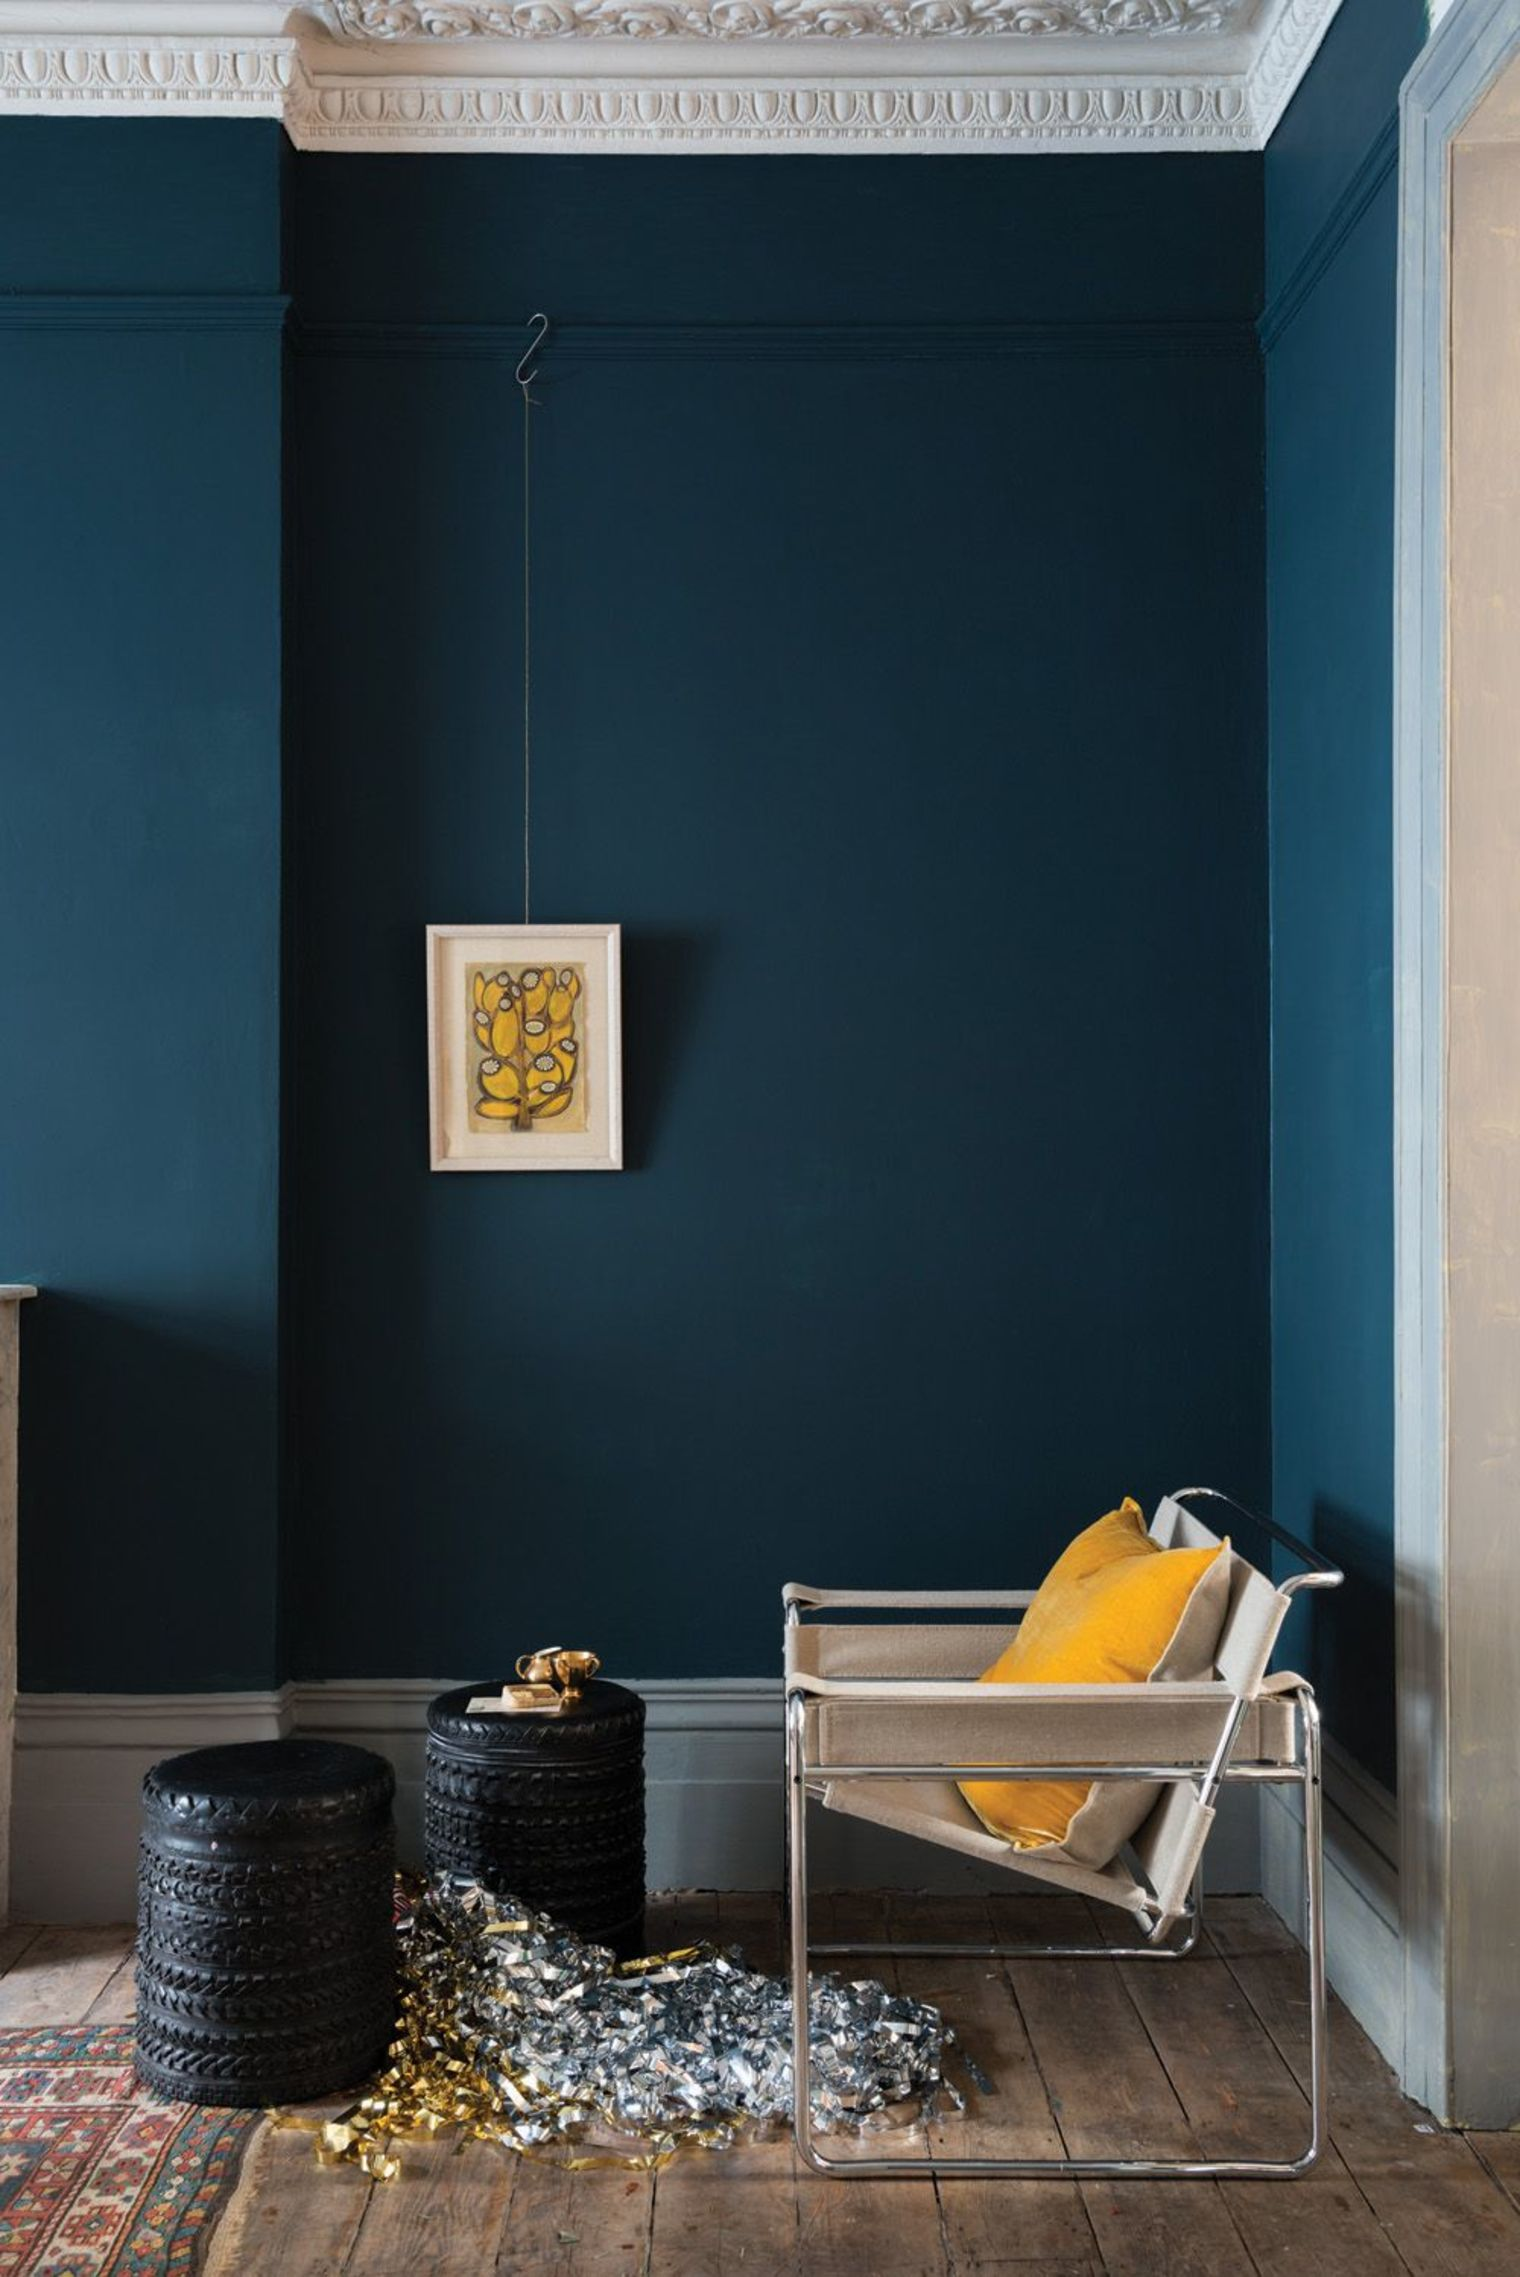 My Color Palette: Blue with Black Accents